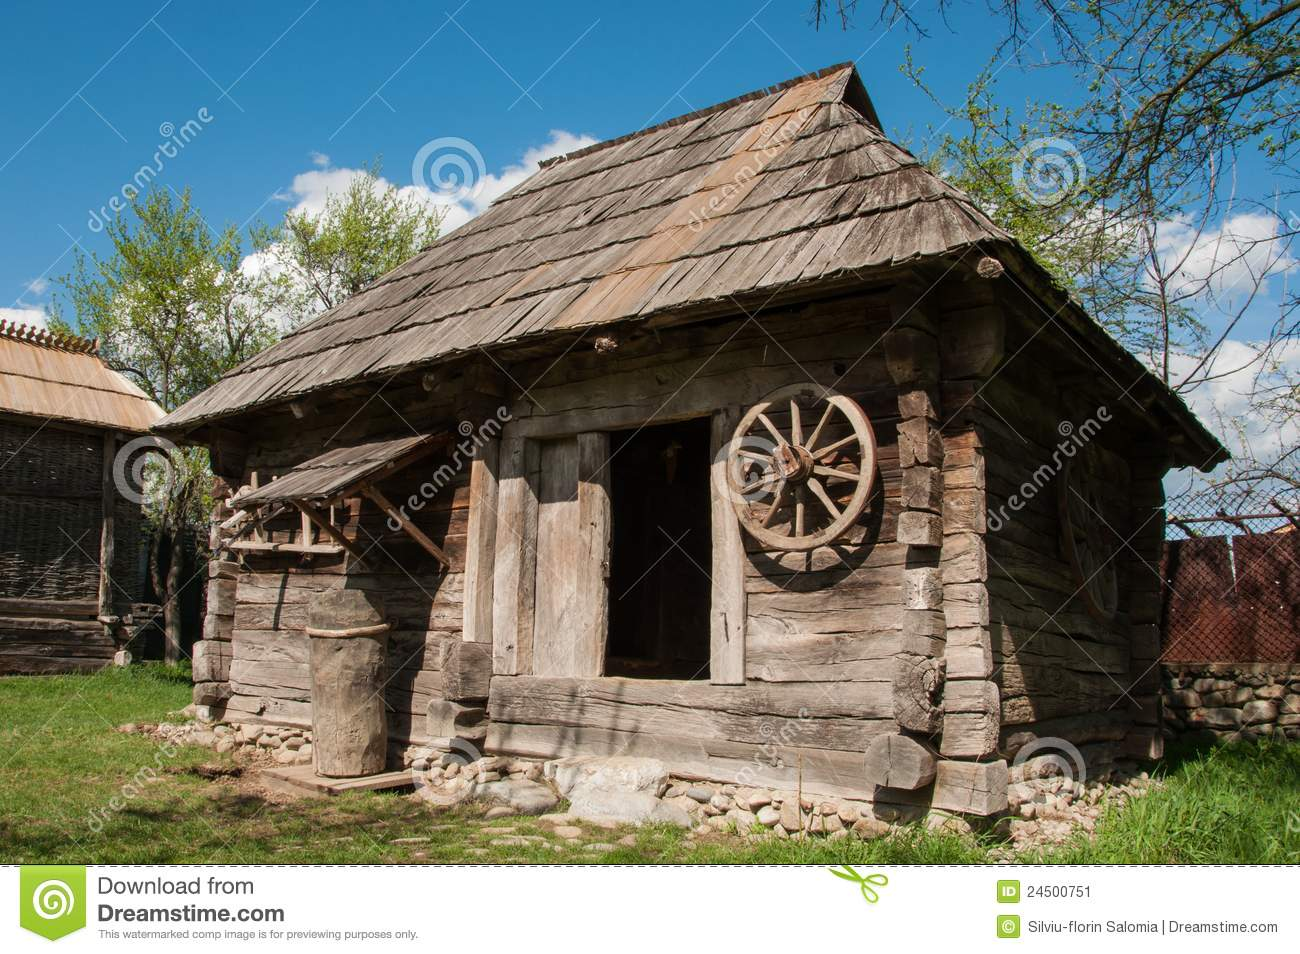 Old Wooden House In Rural Romania Stock Image - Image ...